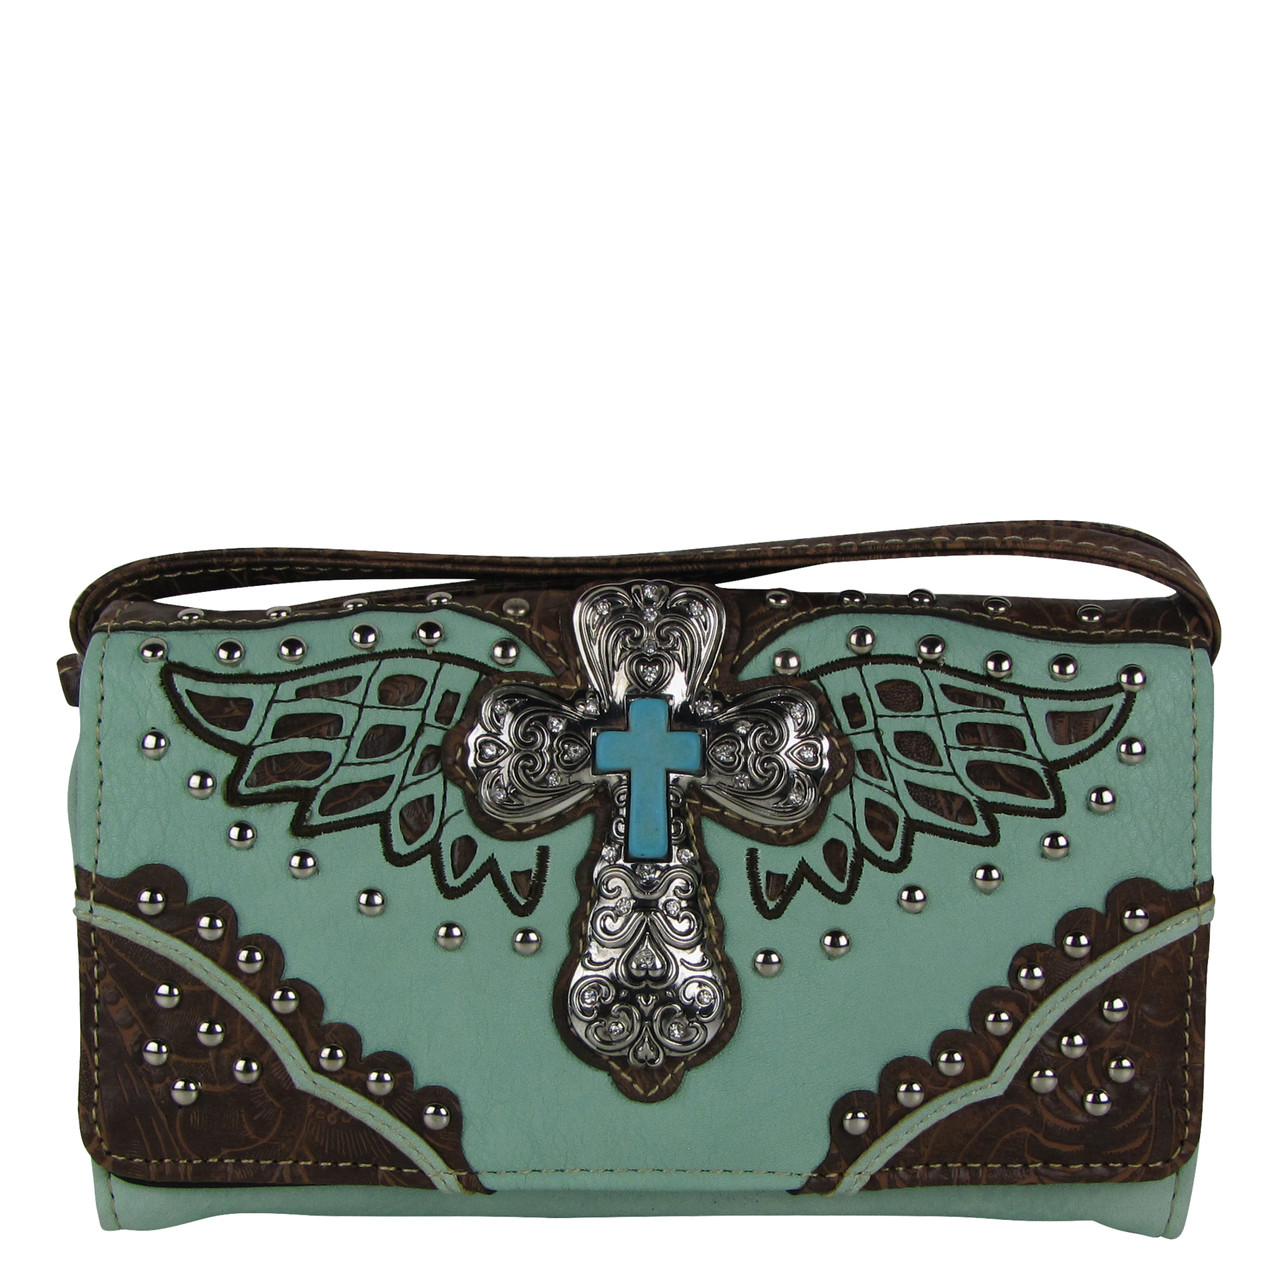 GREEN WESTERN CROSS WITH WINGS LOOK CLUTCH TRIFOLD WALLET CW1-1278GRN